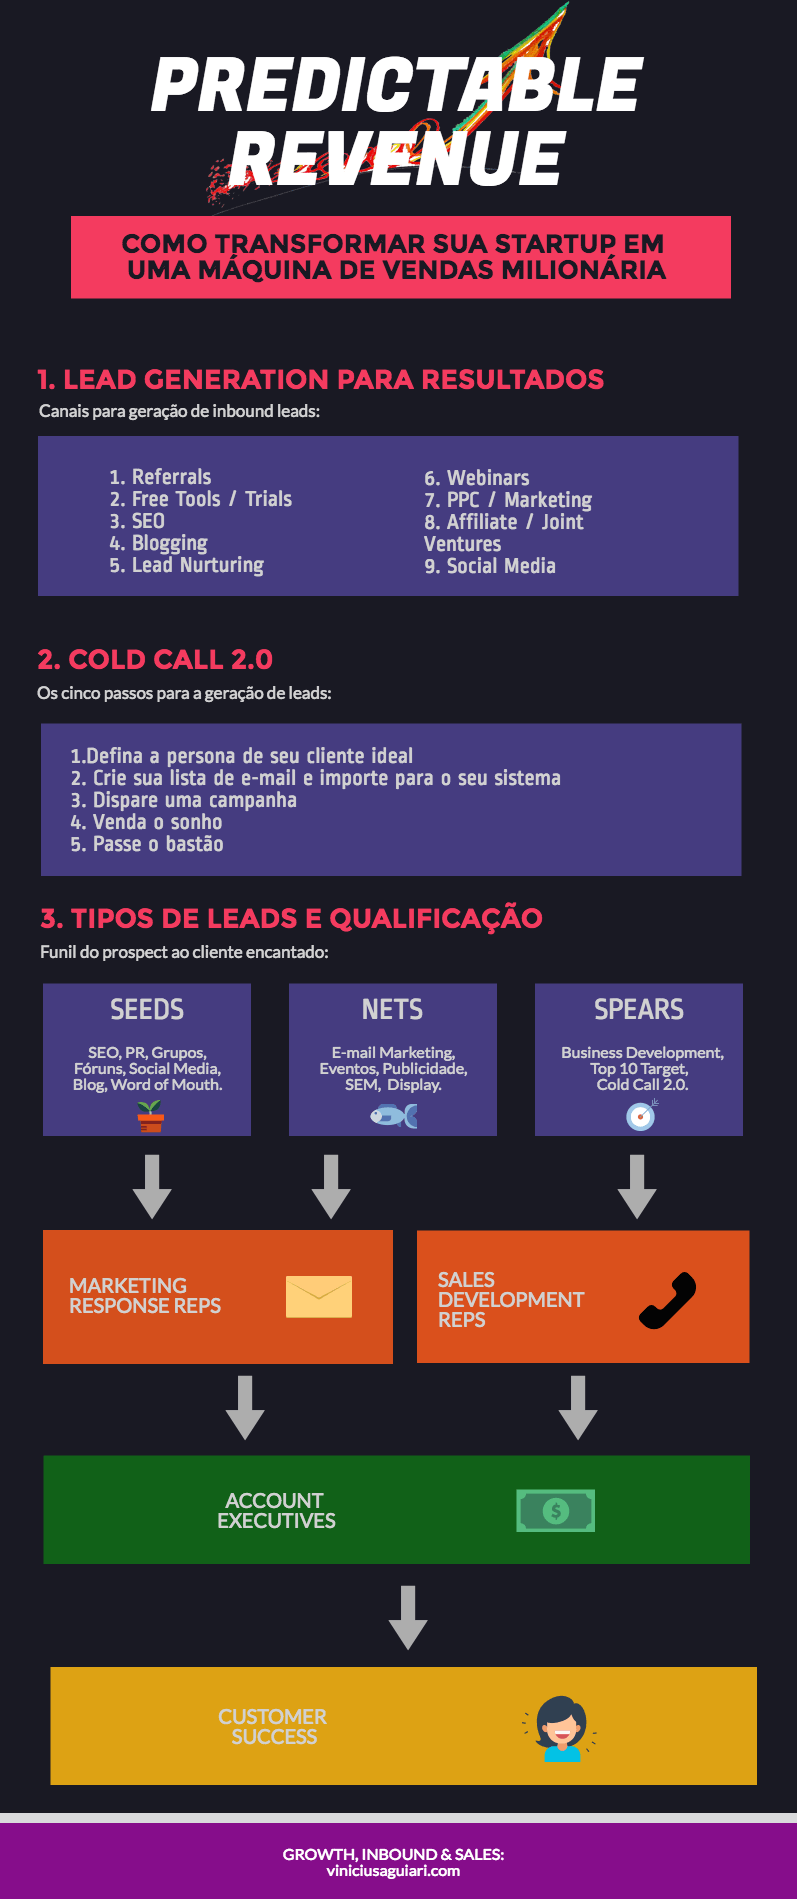 Predictable revenue: infográfico ilustrado de processos